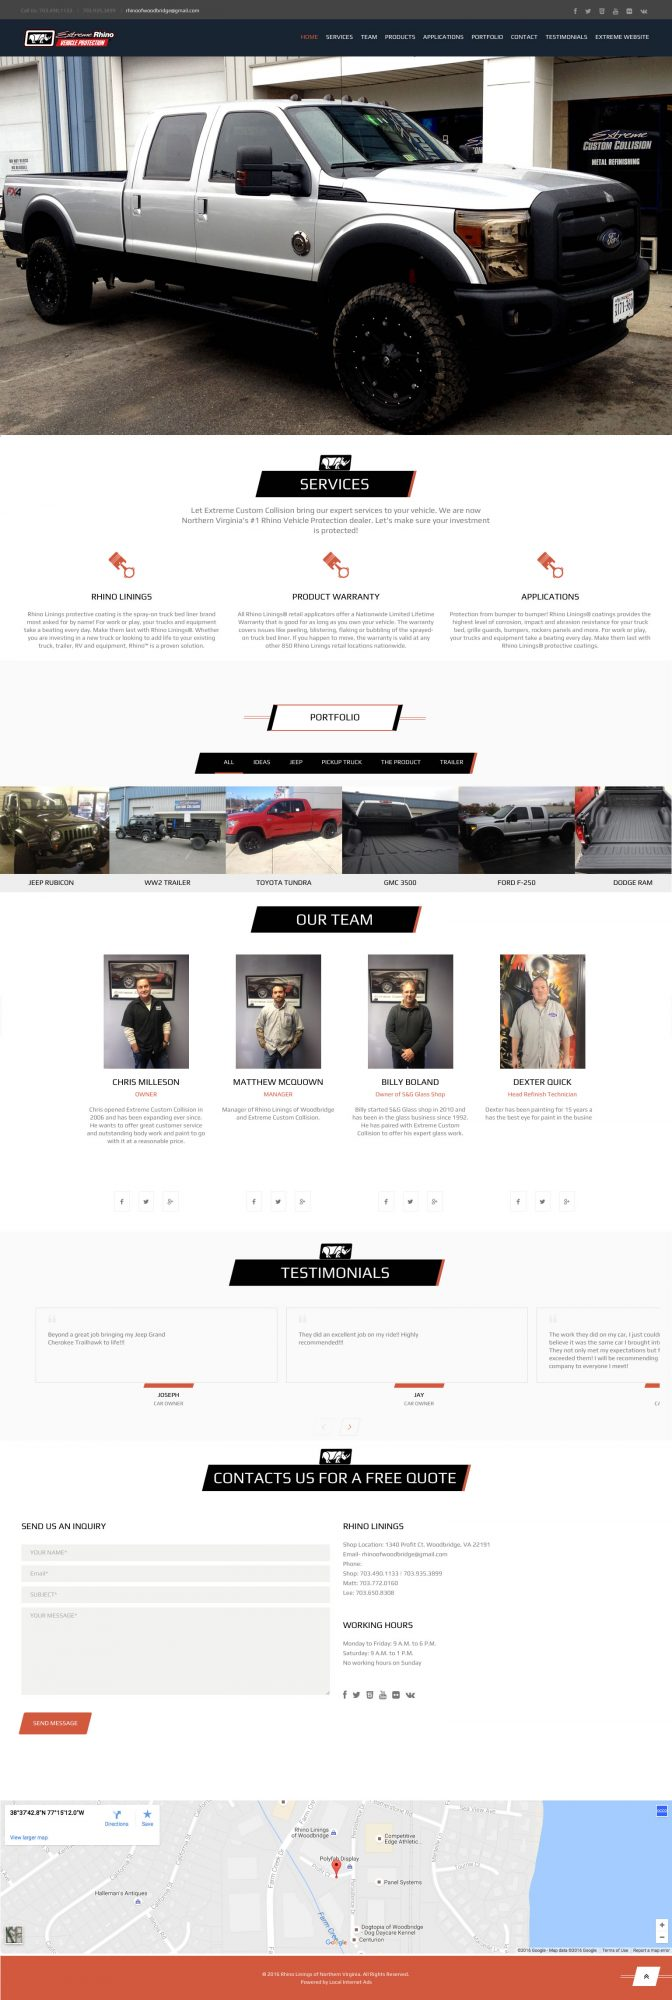 Website design Auto Body